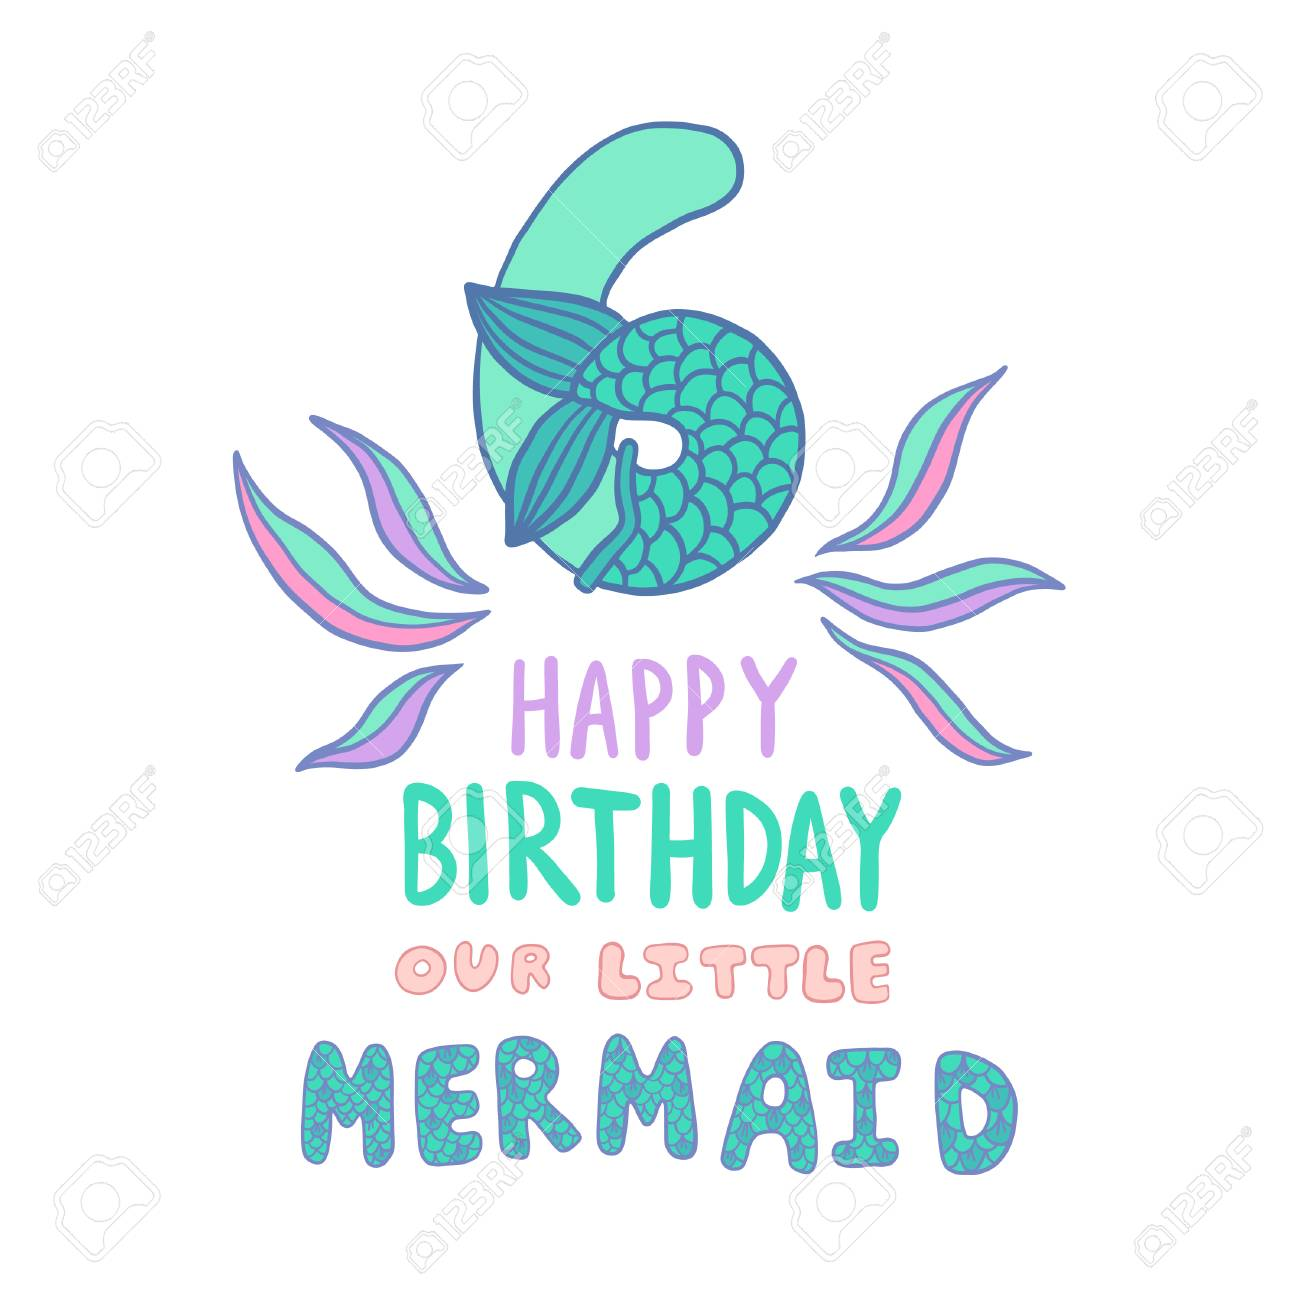 Number Six With Mermaid Tail Vector Illustration Royalty Free Cliparts Vectors And Stock Illustration Image 110476339